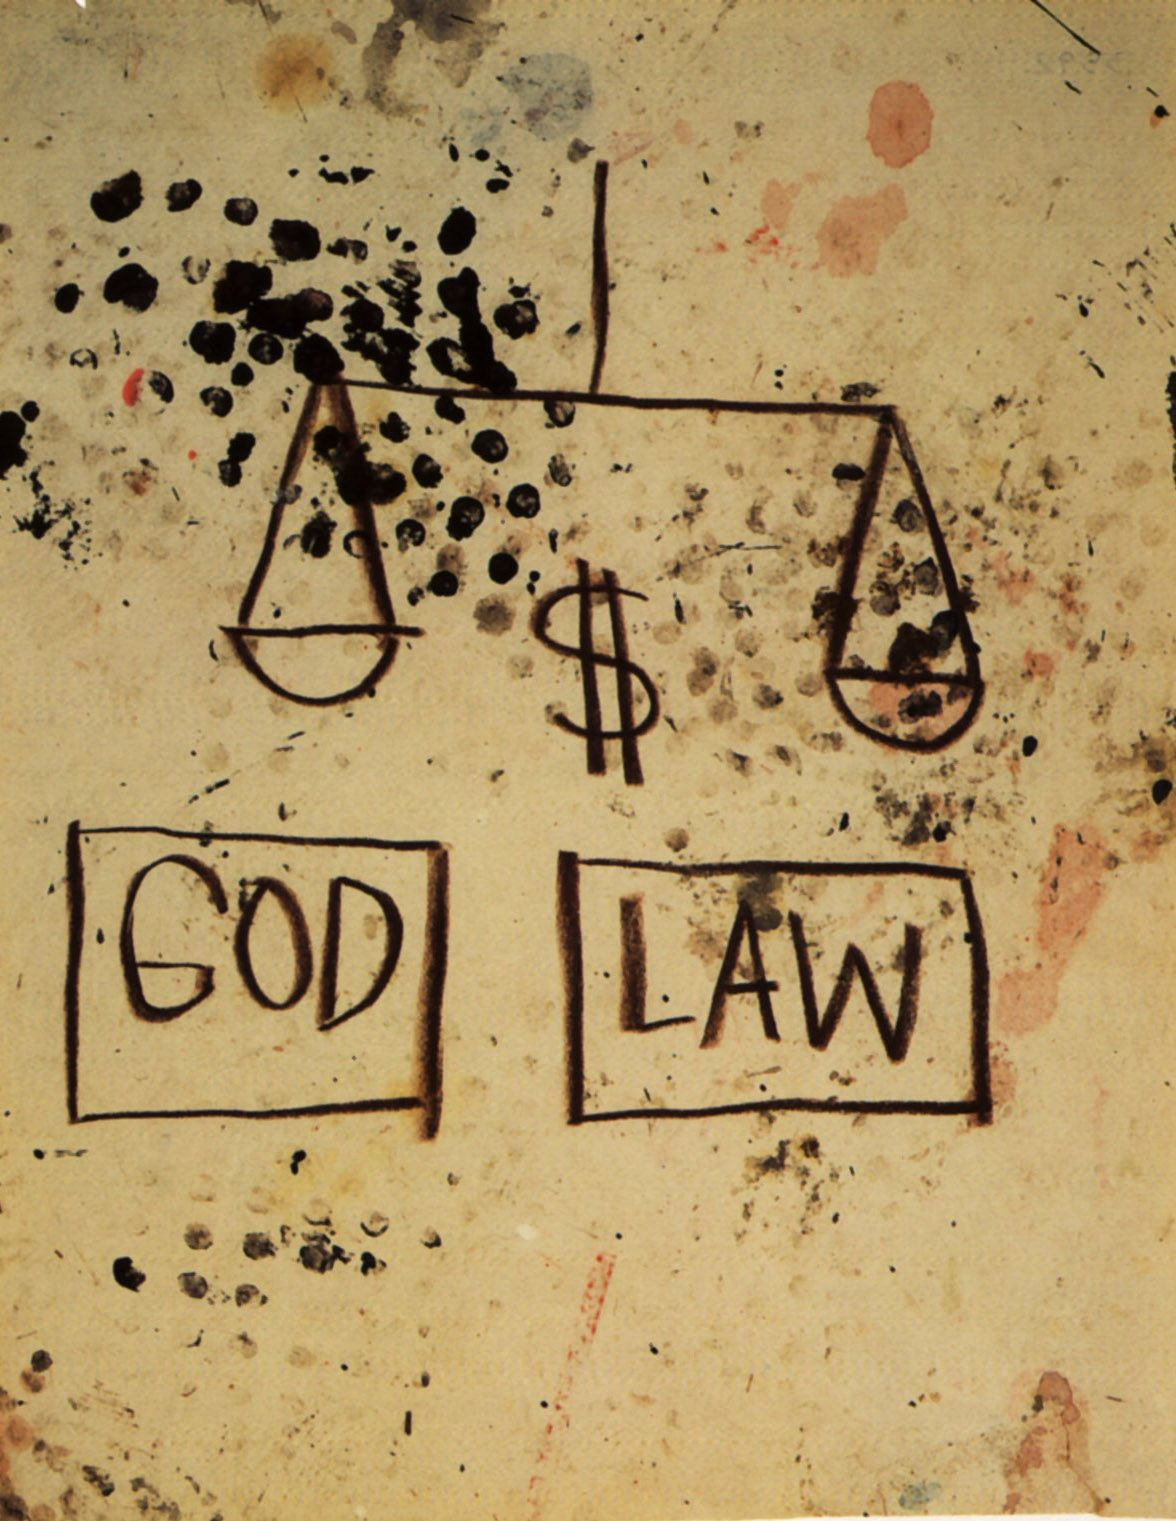 Basquiat. God, Law, 1981